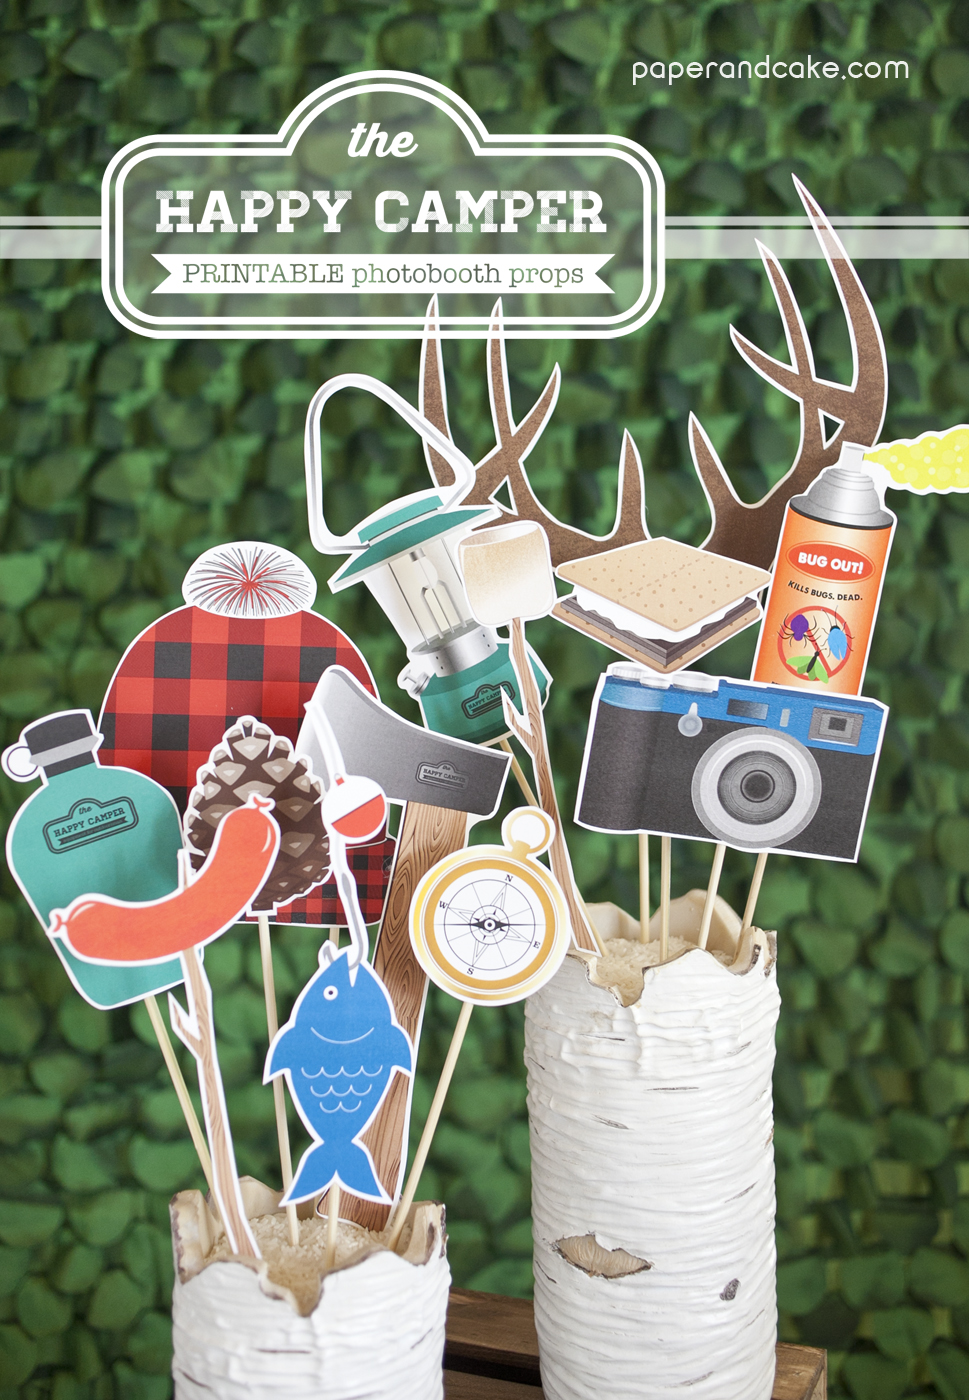 Camping Printable Photobooth Props  Paper and Cake Paper